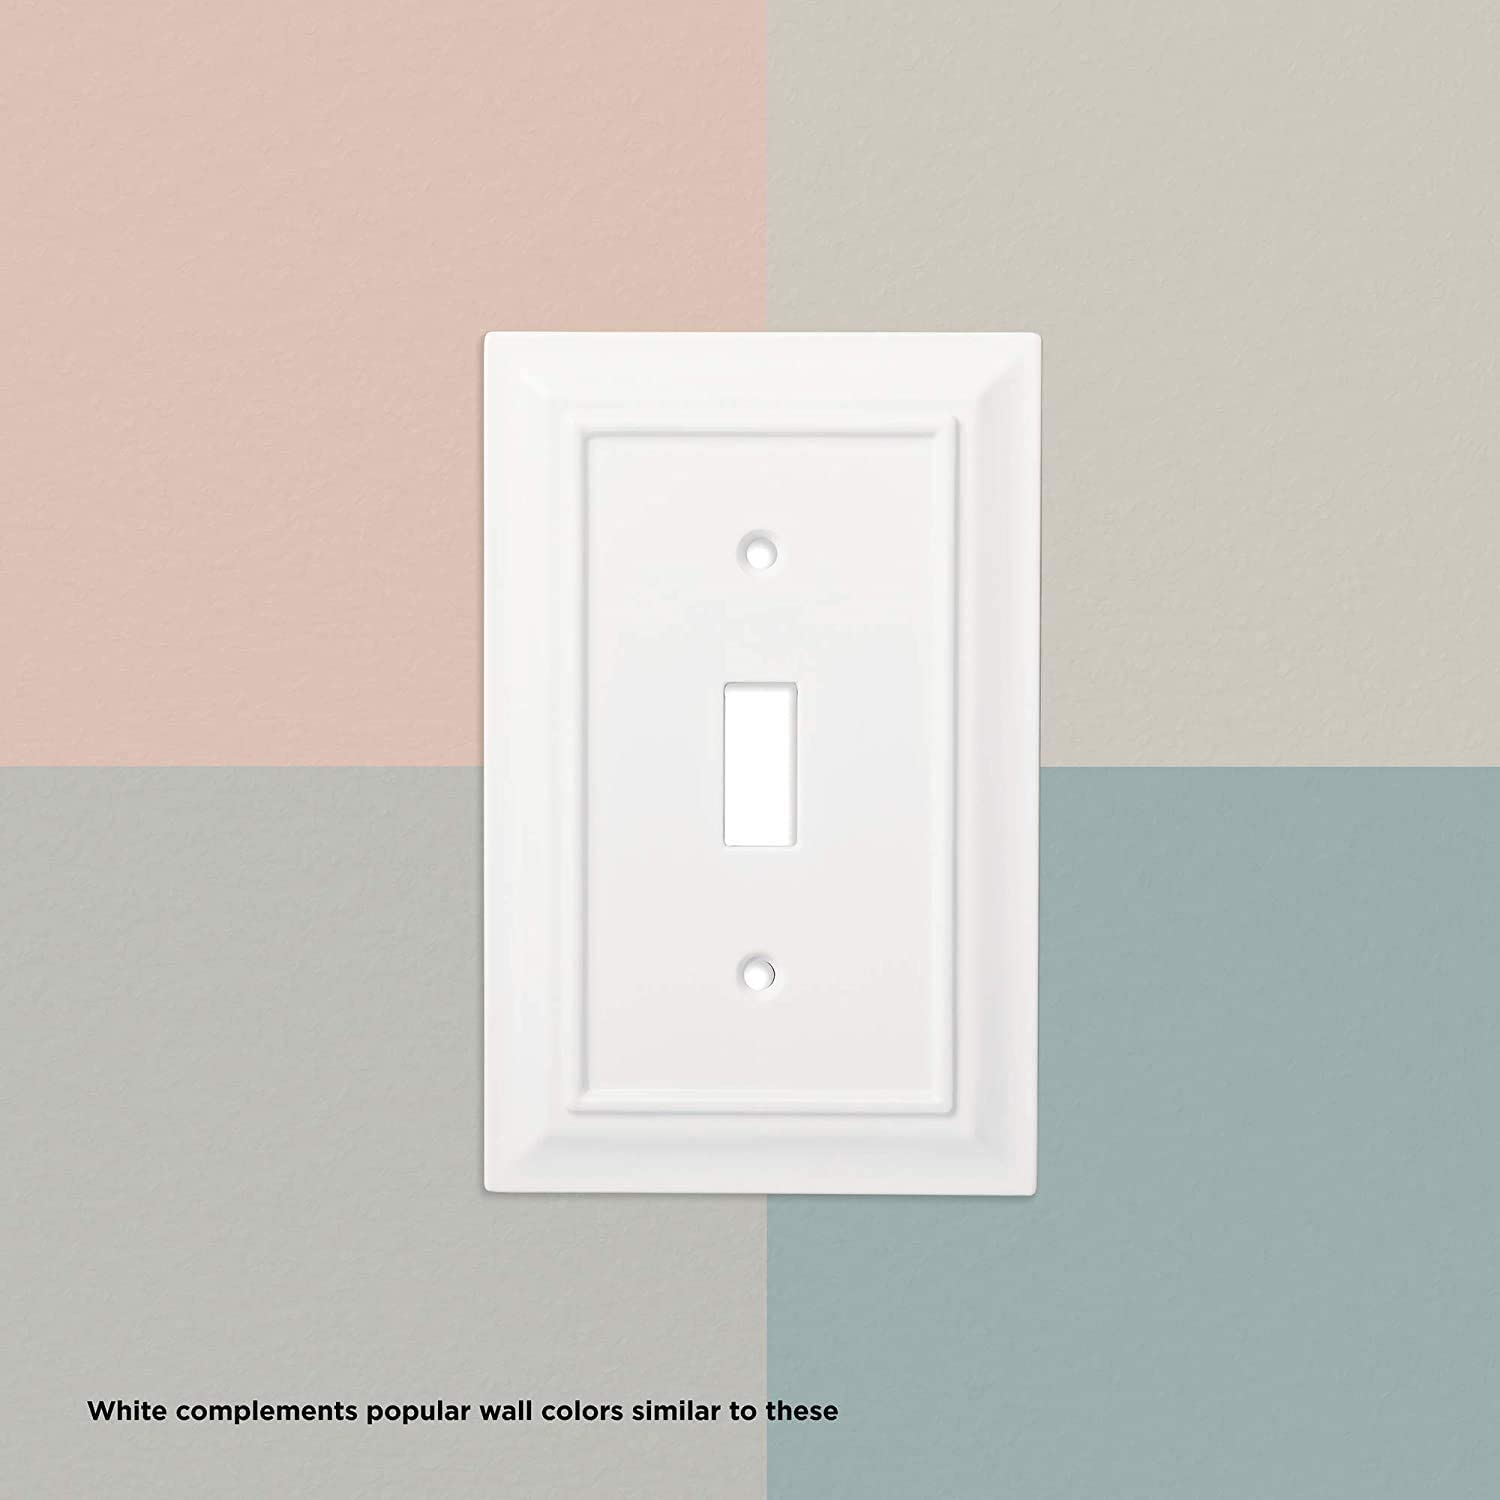 Franklin Brass W35243-PW-C Classic Architecture Single Decorator Wall Plate/Switch Plate/Cover, White - -